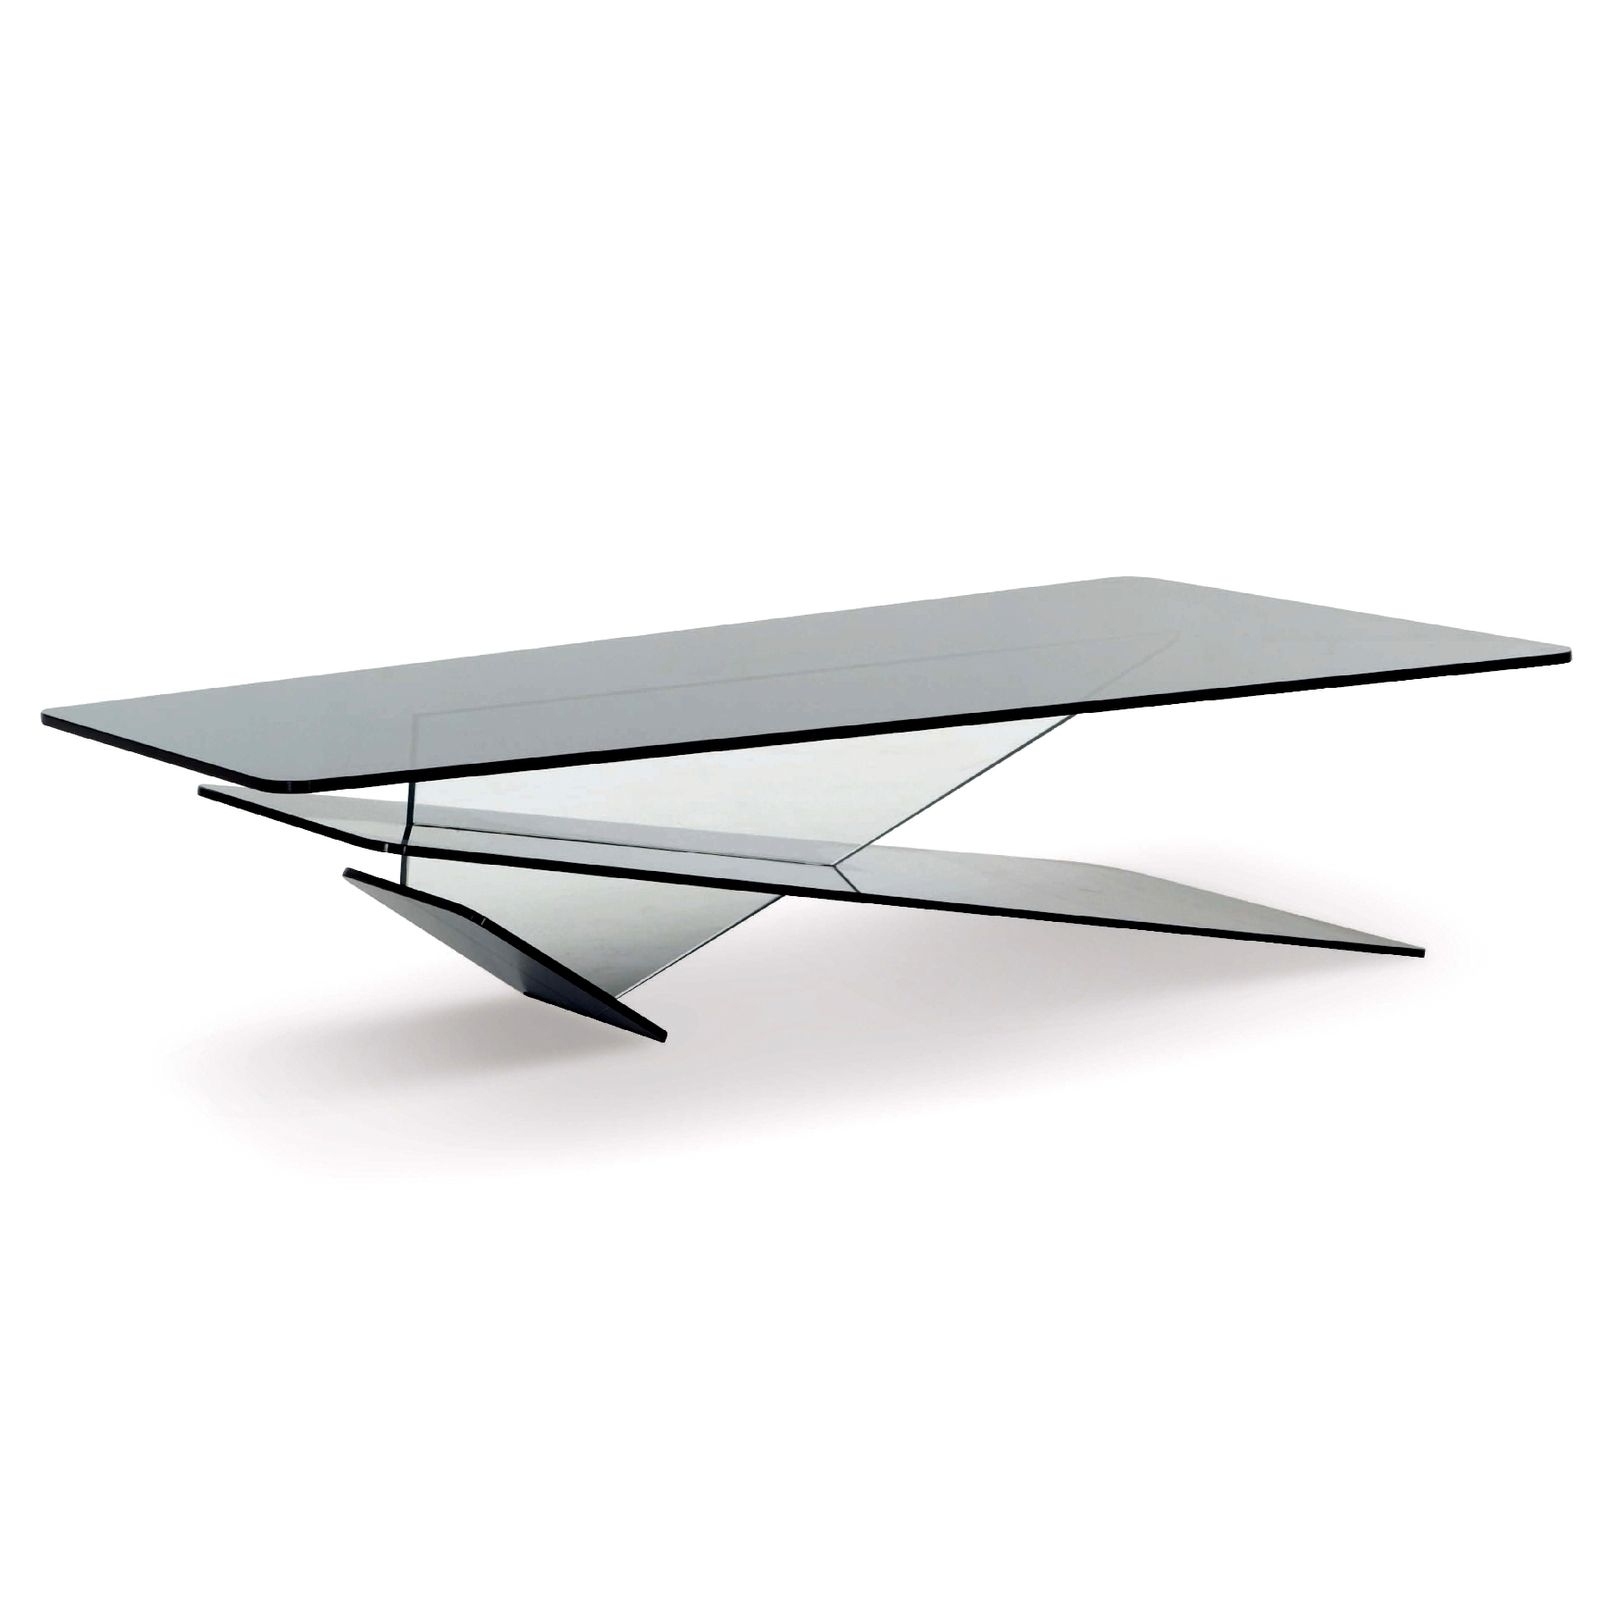 Cronophot Coffee Table - Roche Bobois